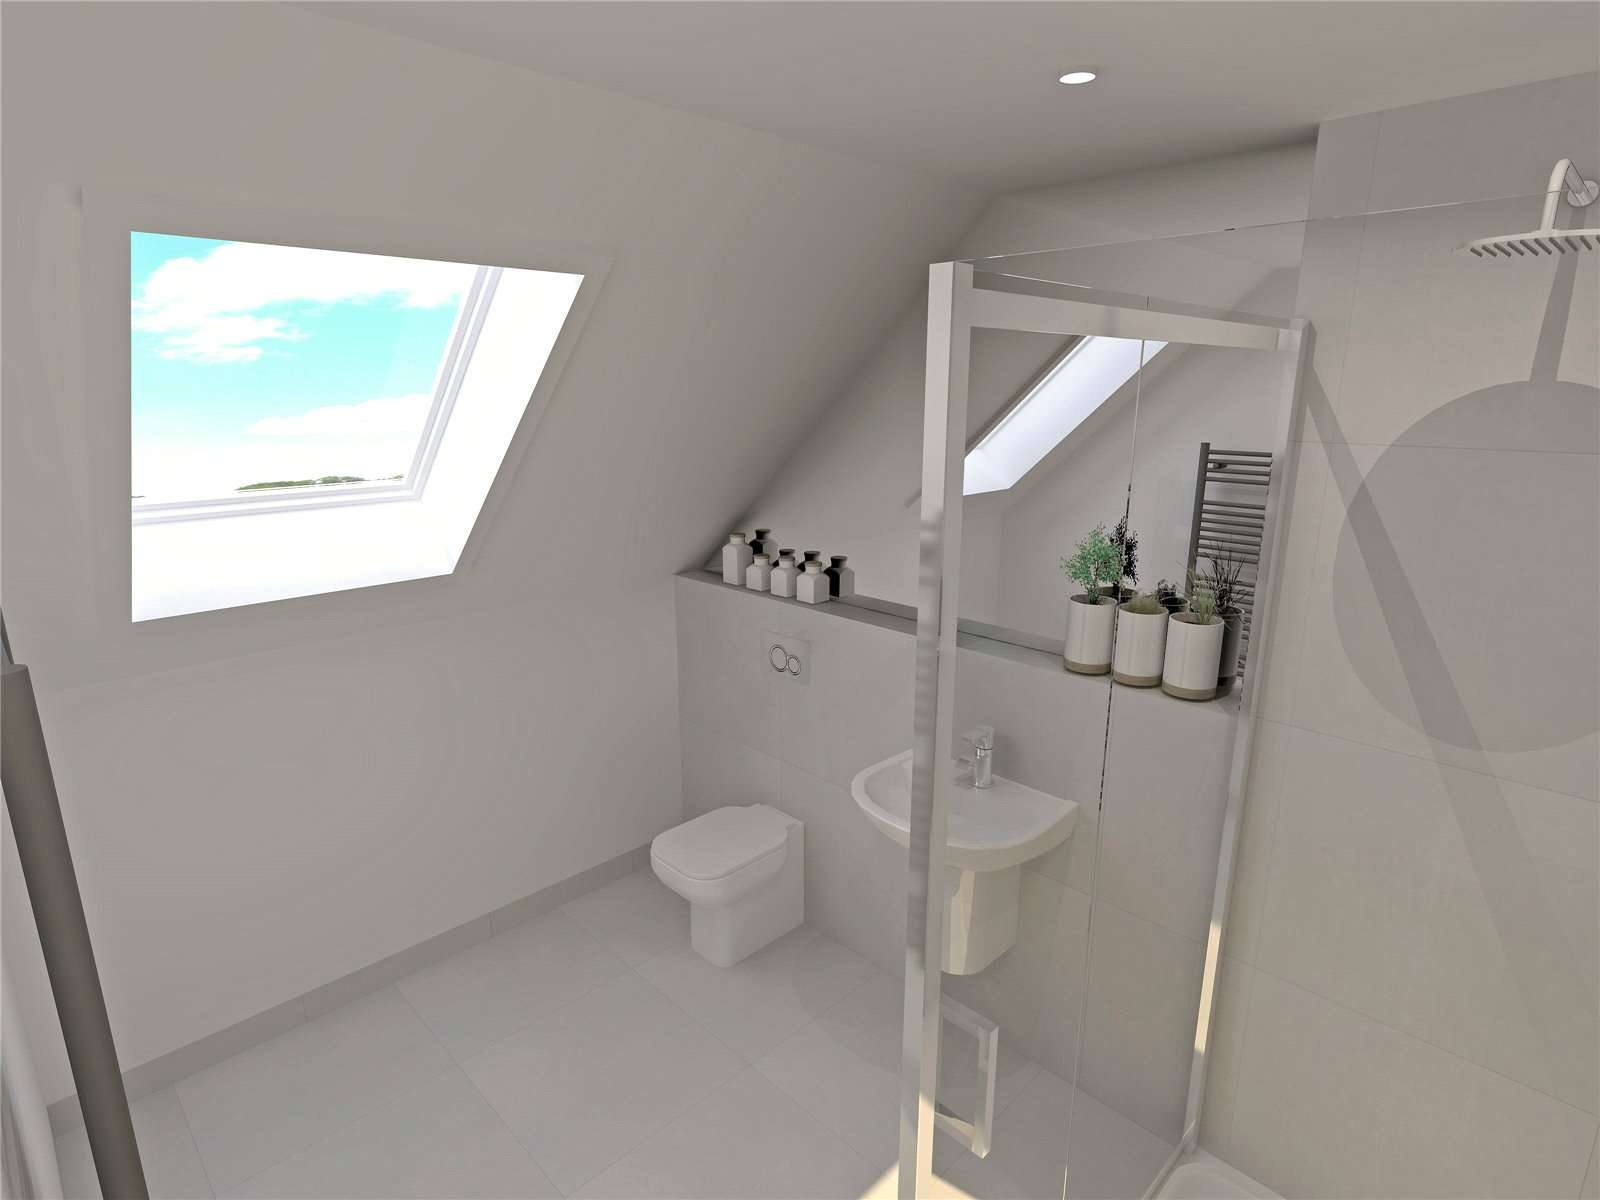 Bagno Design Edinburgh Savills Flat B 108 South Street St Andrews Fife Ky16 9qd